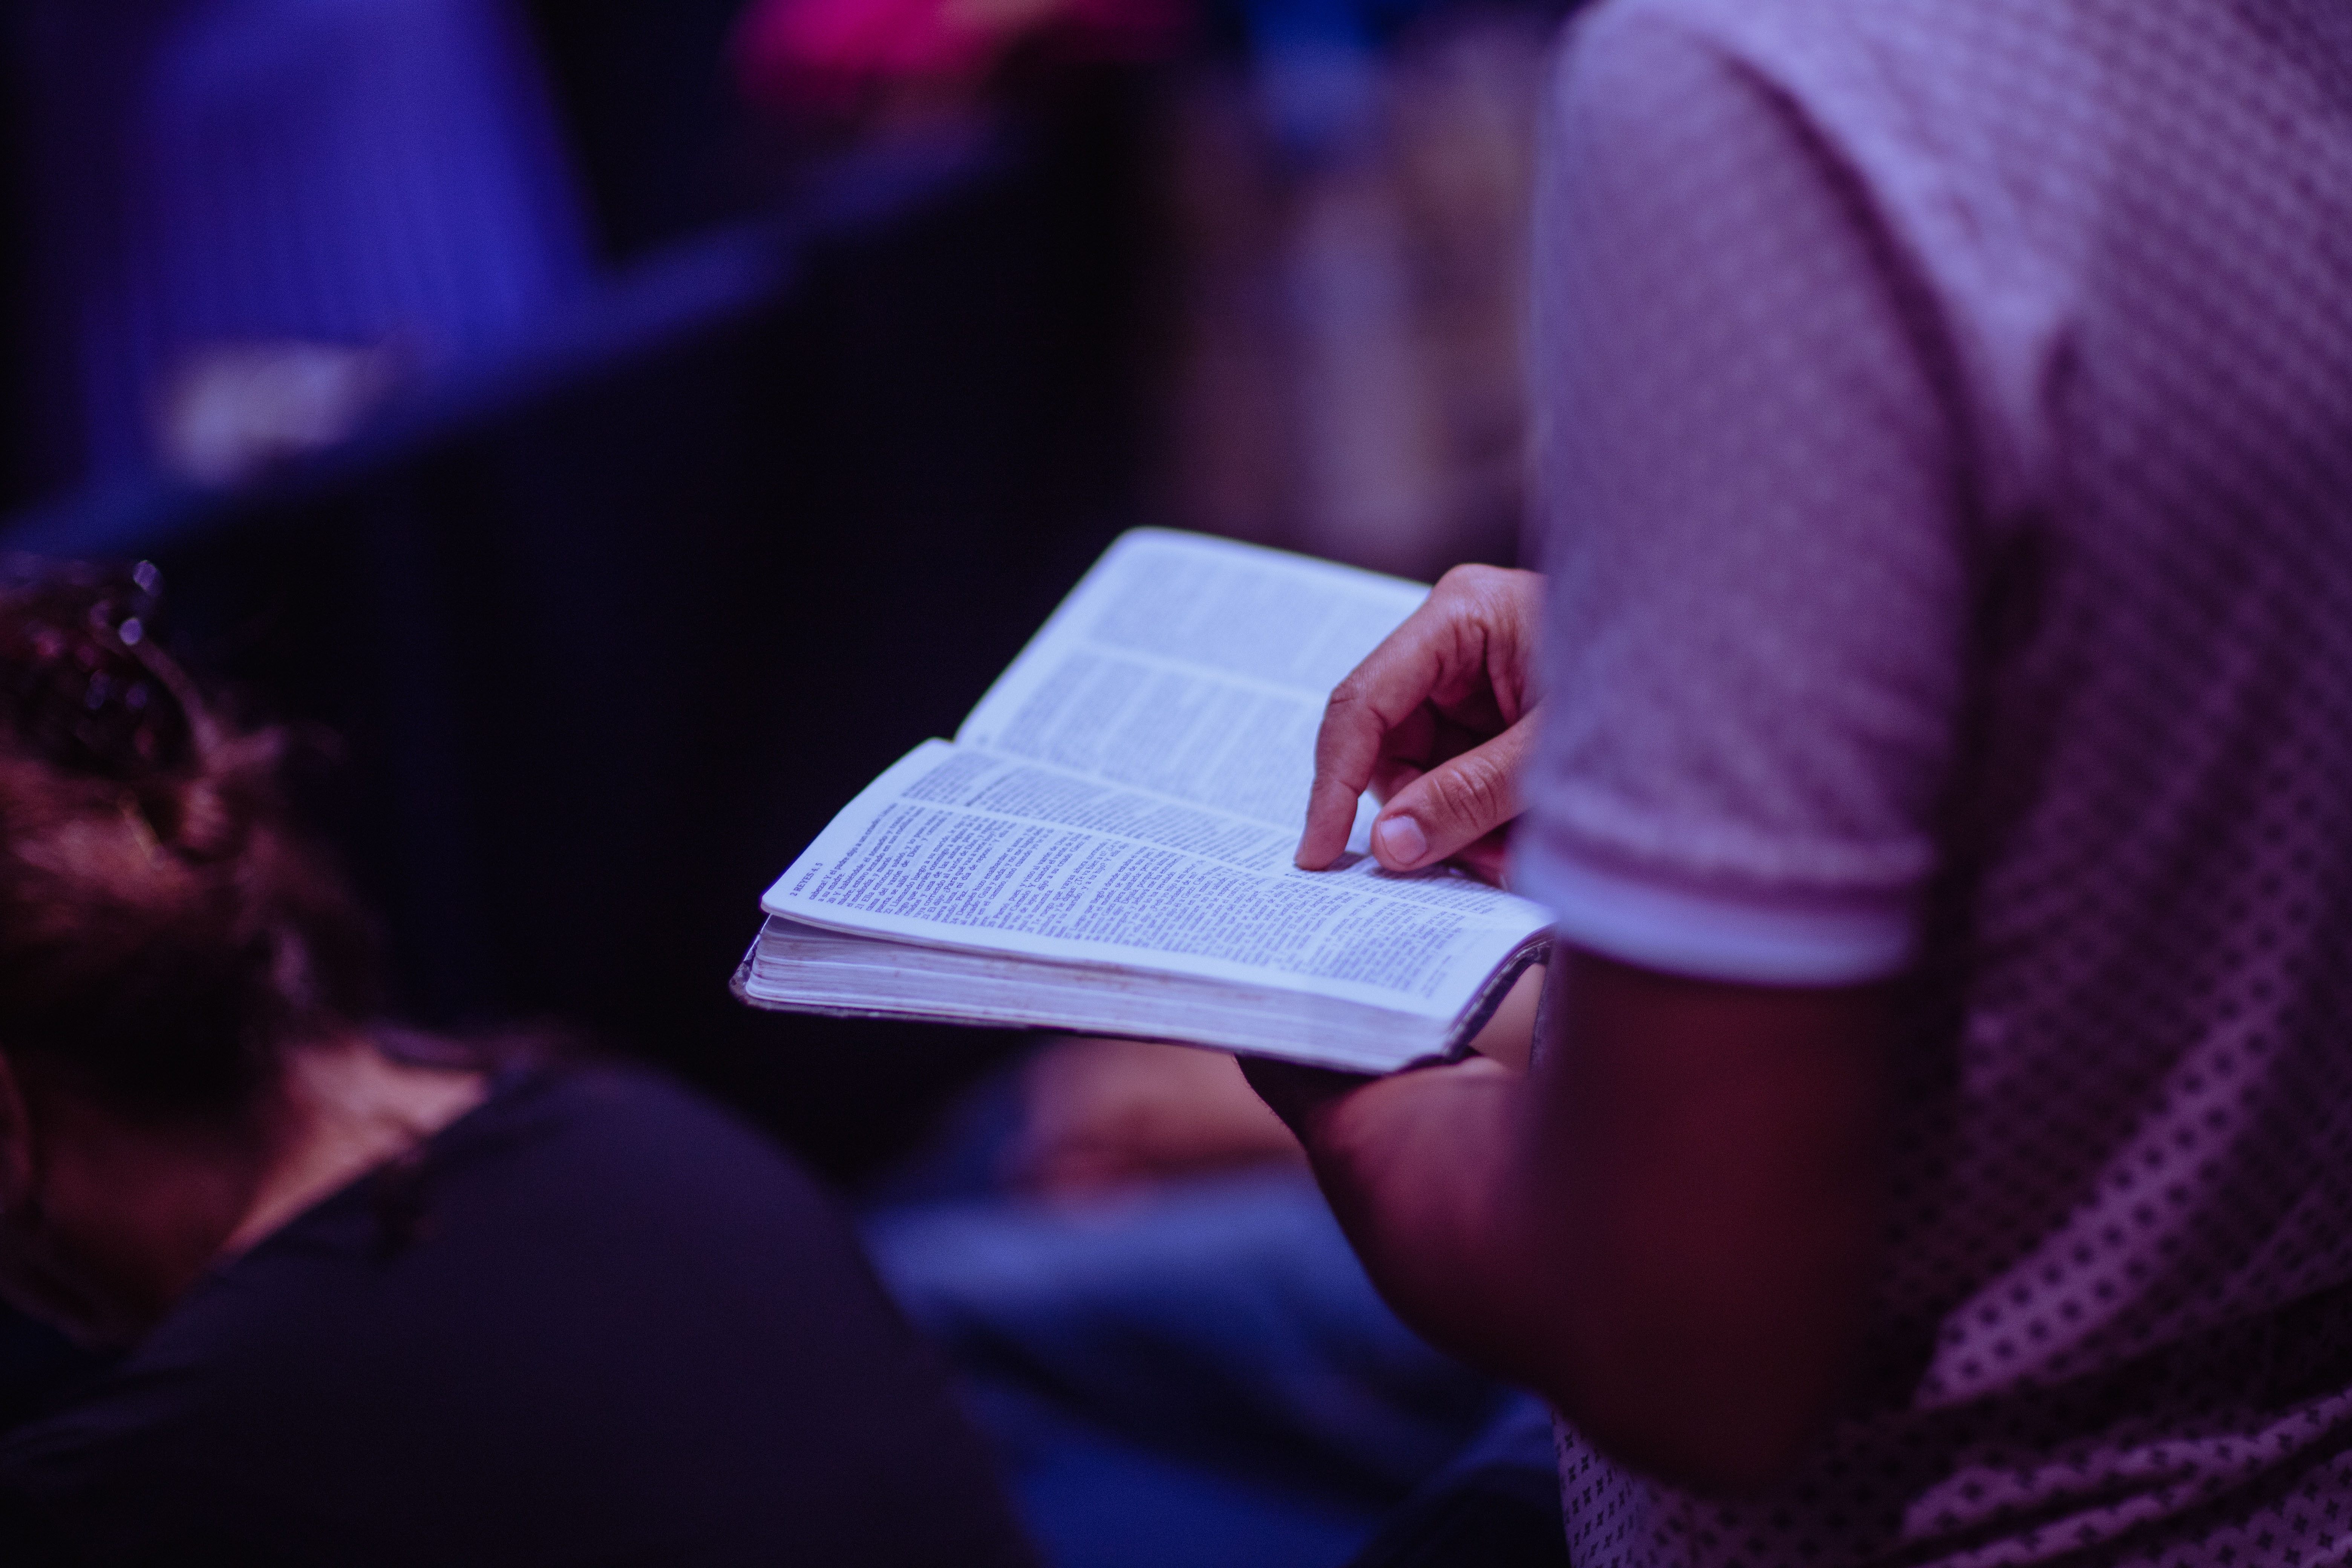 selective-focus-photo-of-person-holding-book-2351719